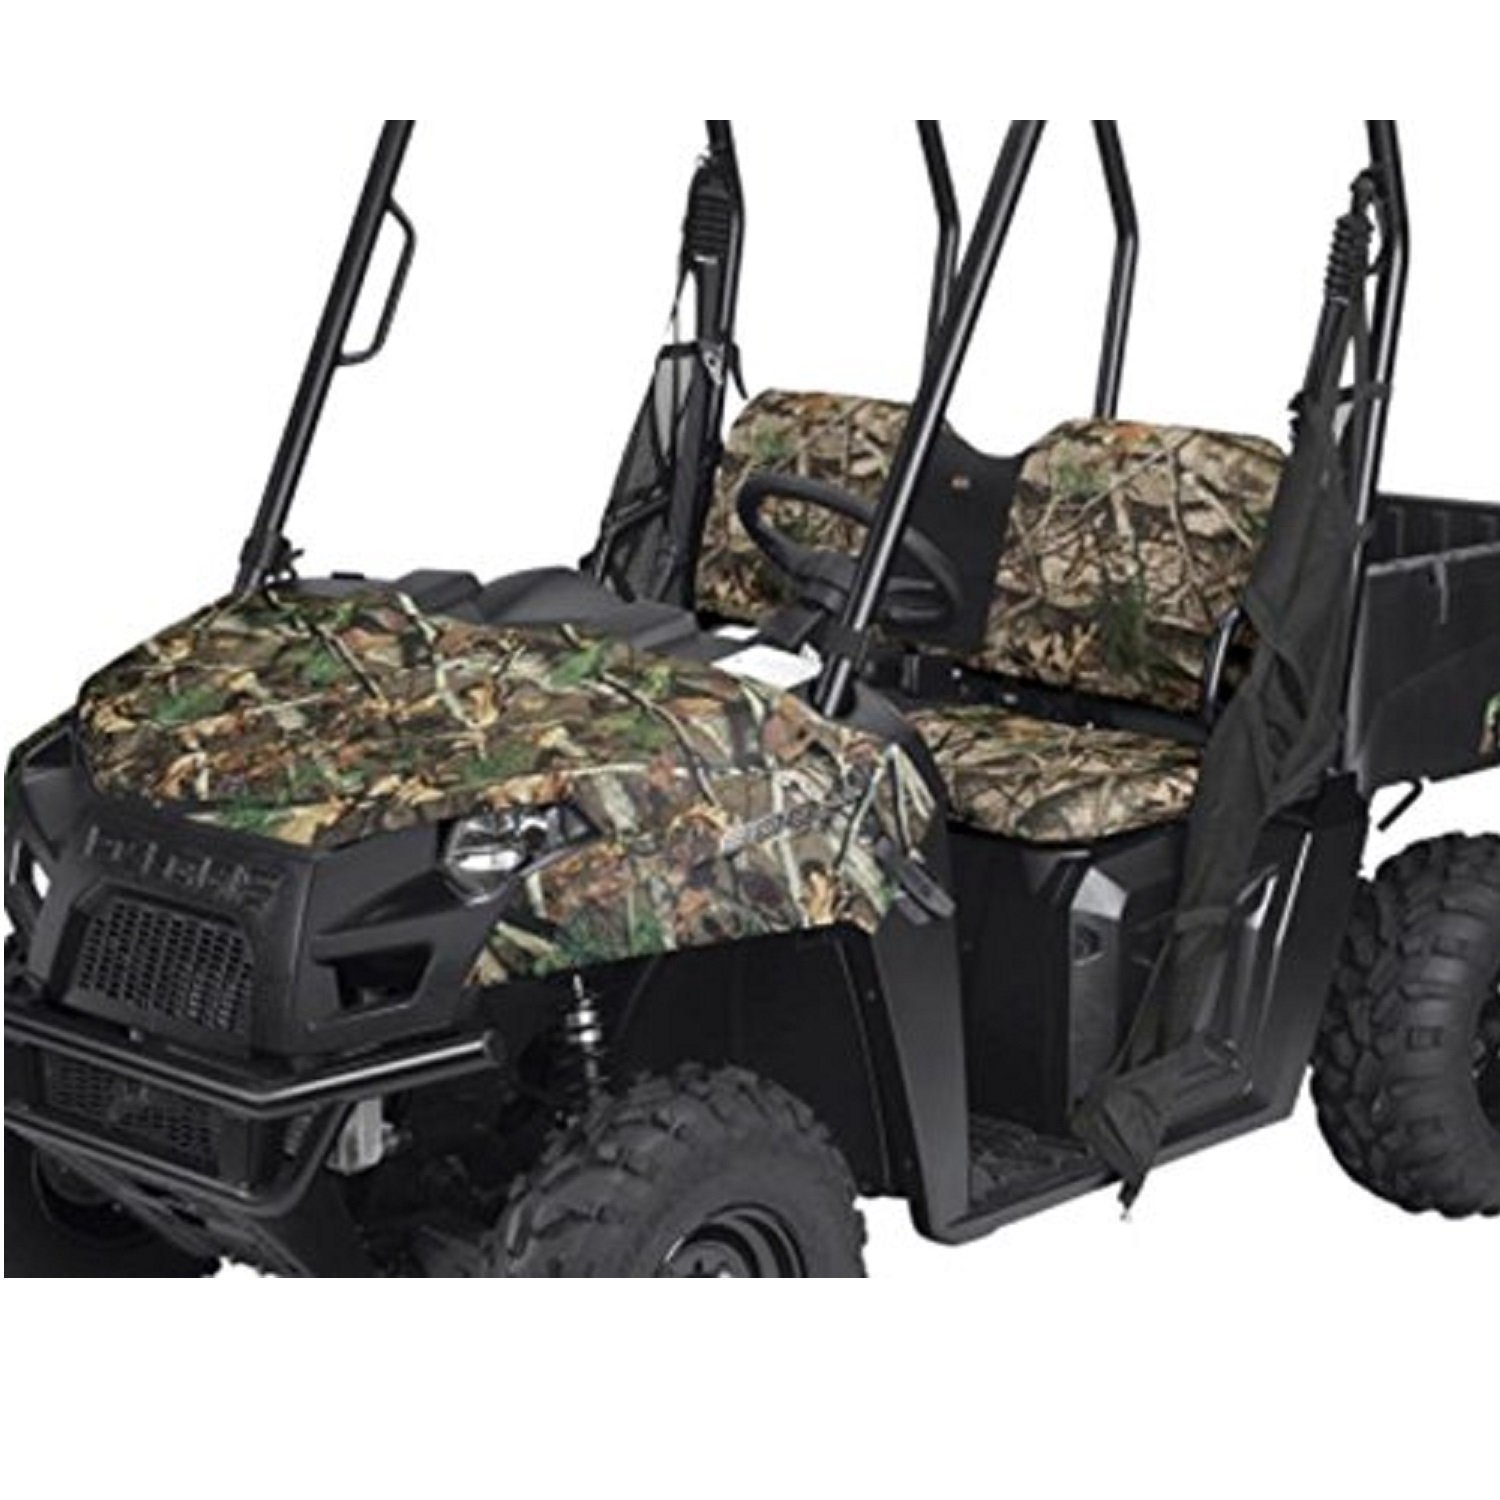 Pleasant Cheap Utv Cover Find Utv Cover Deals On Line At Alibaba Com Pdpeps Interior Chair Design Pdpepsorg